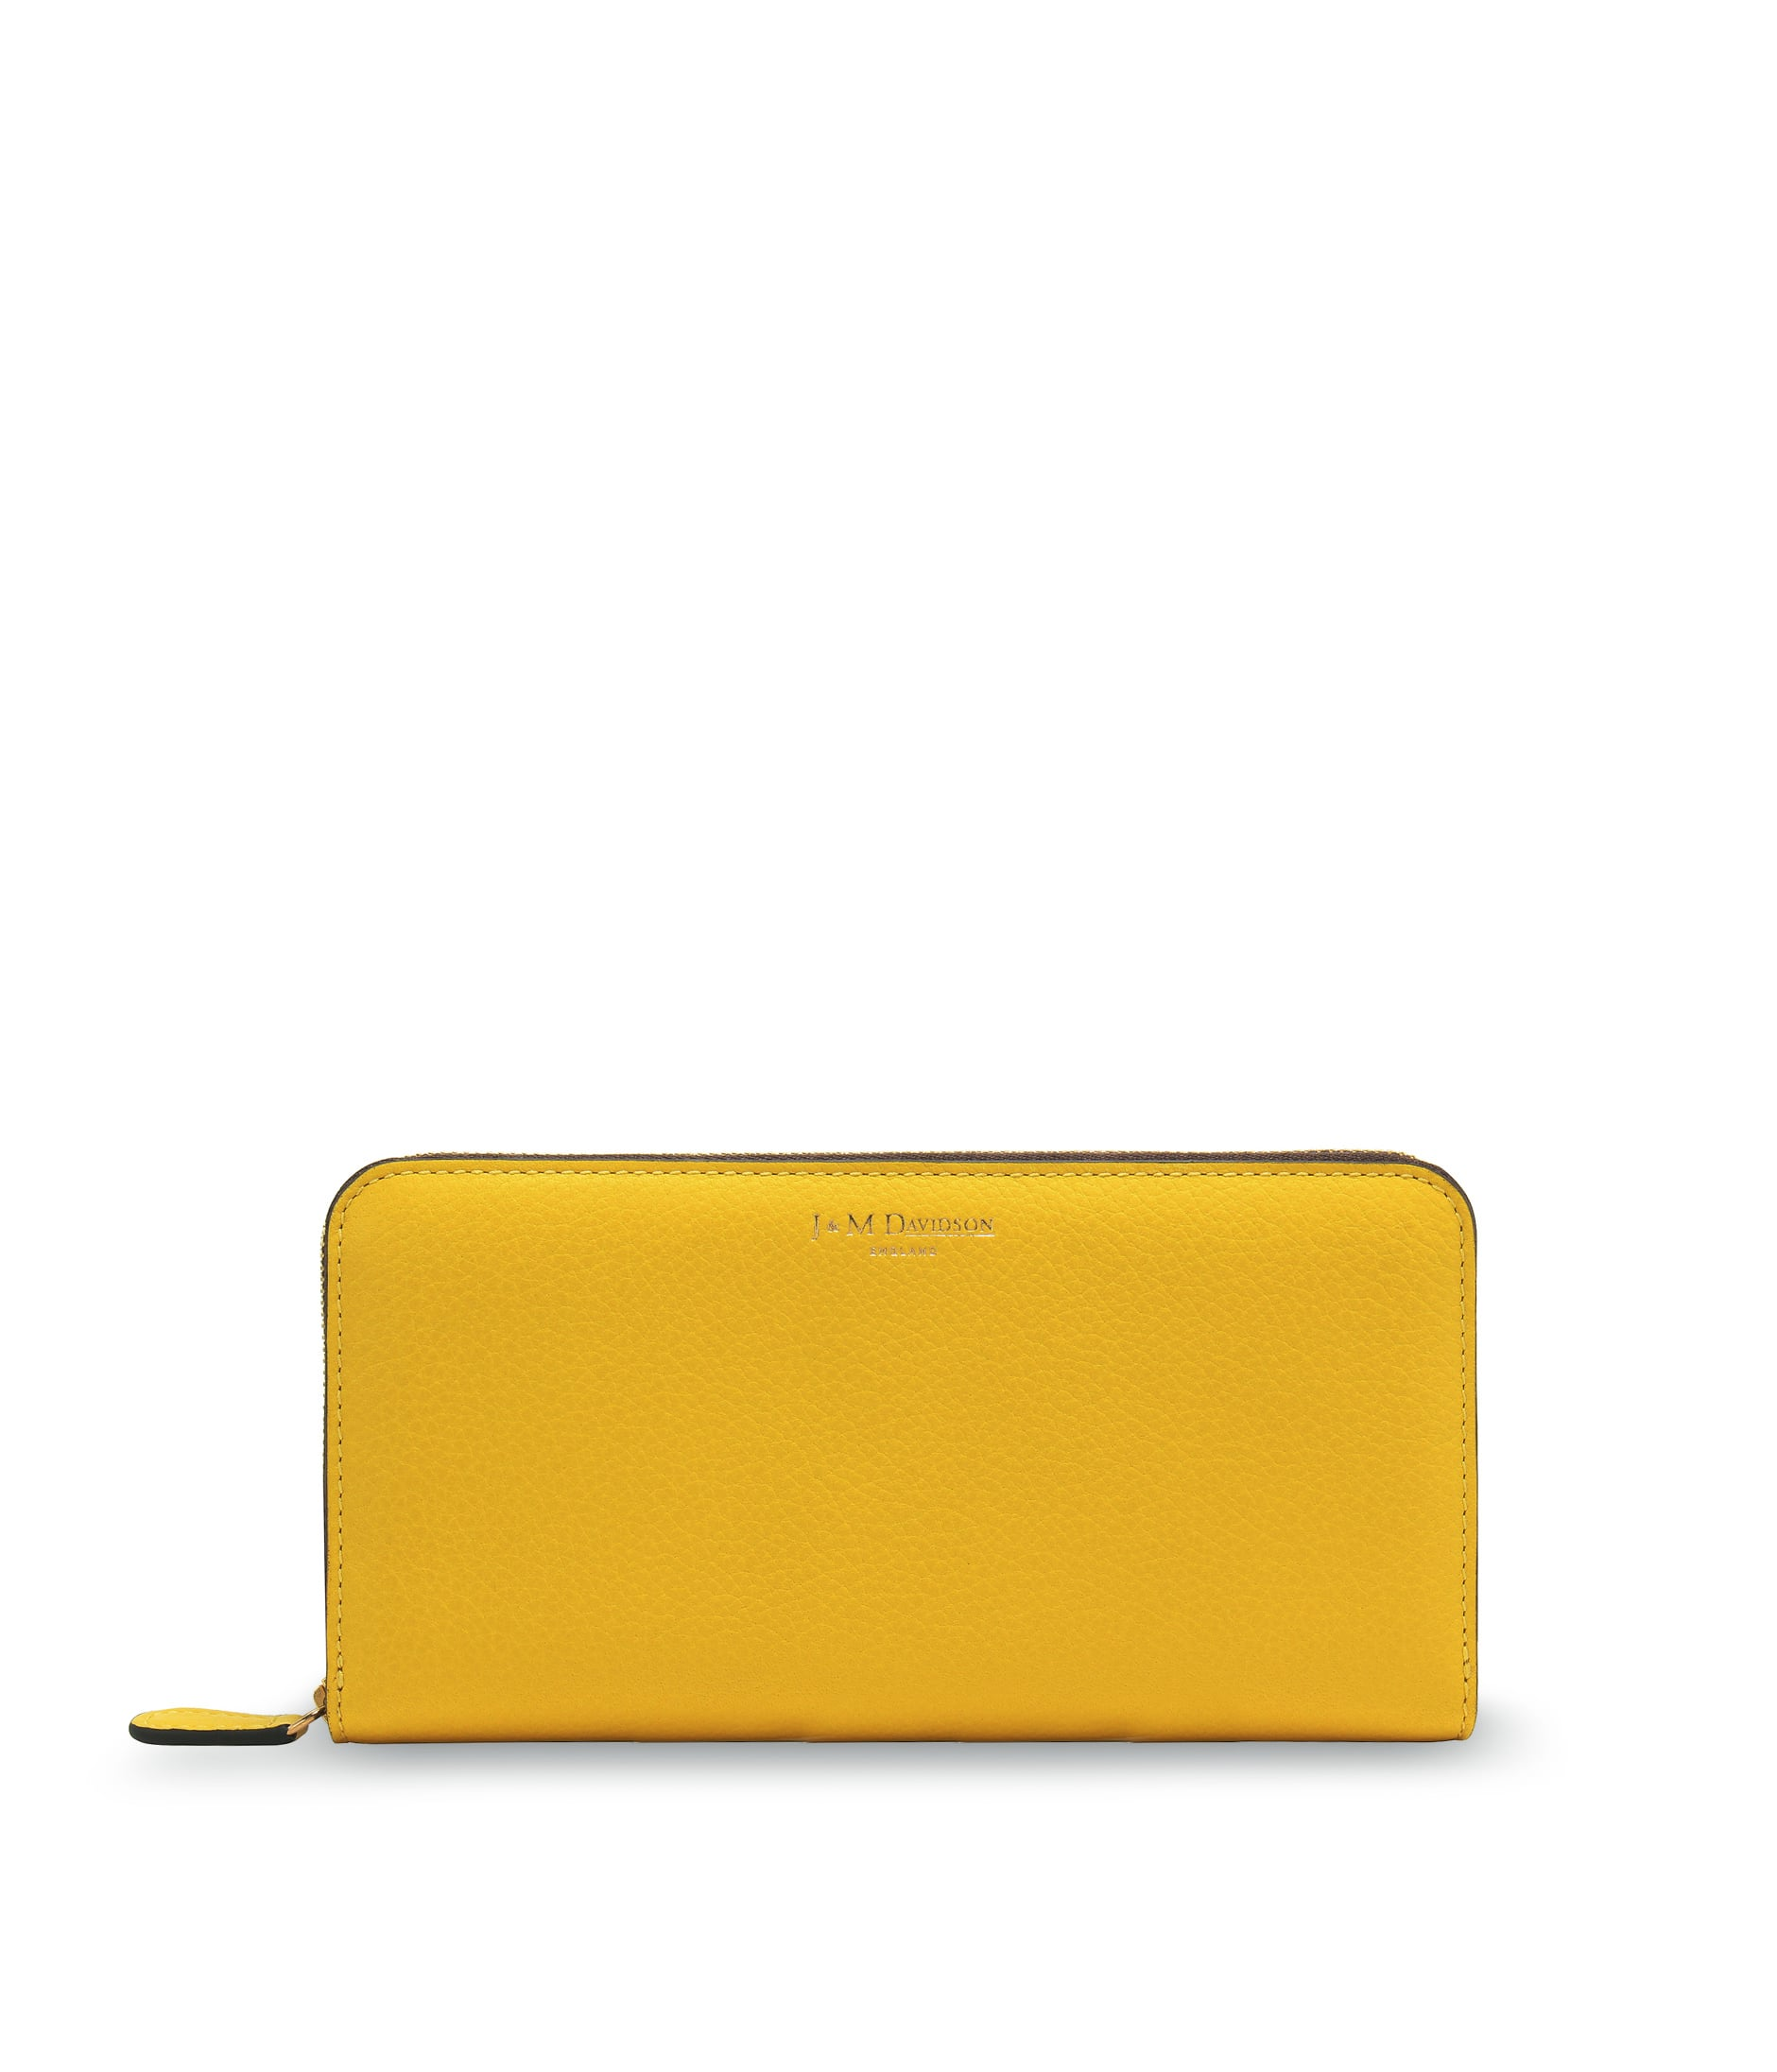 LONG ZIP WALLET 詳細画像 ACACIA YELLOW 1